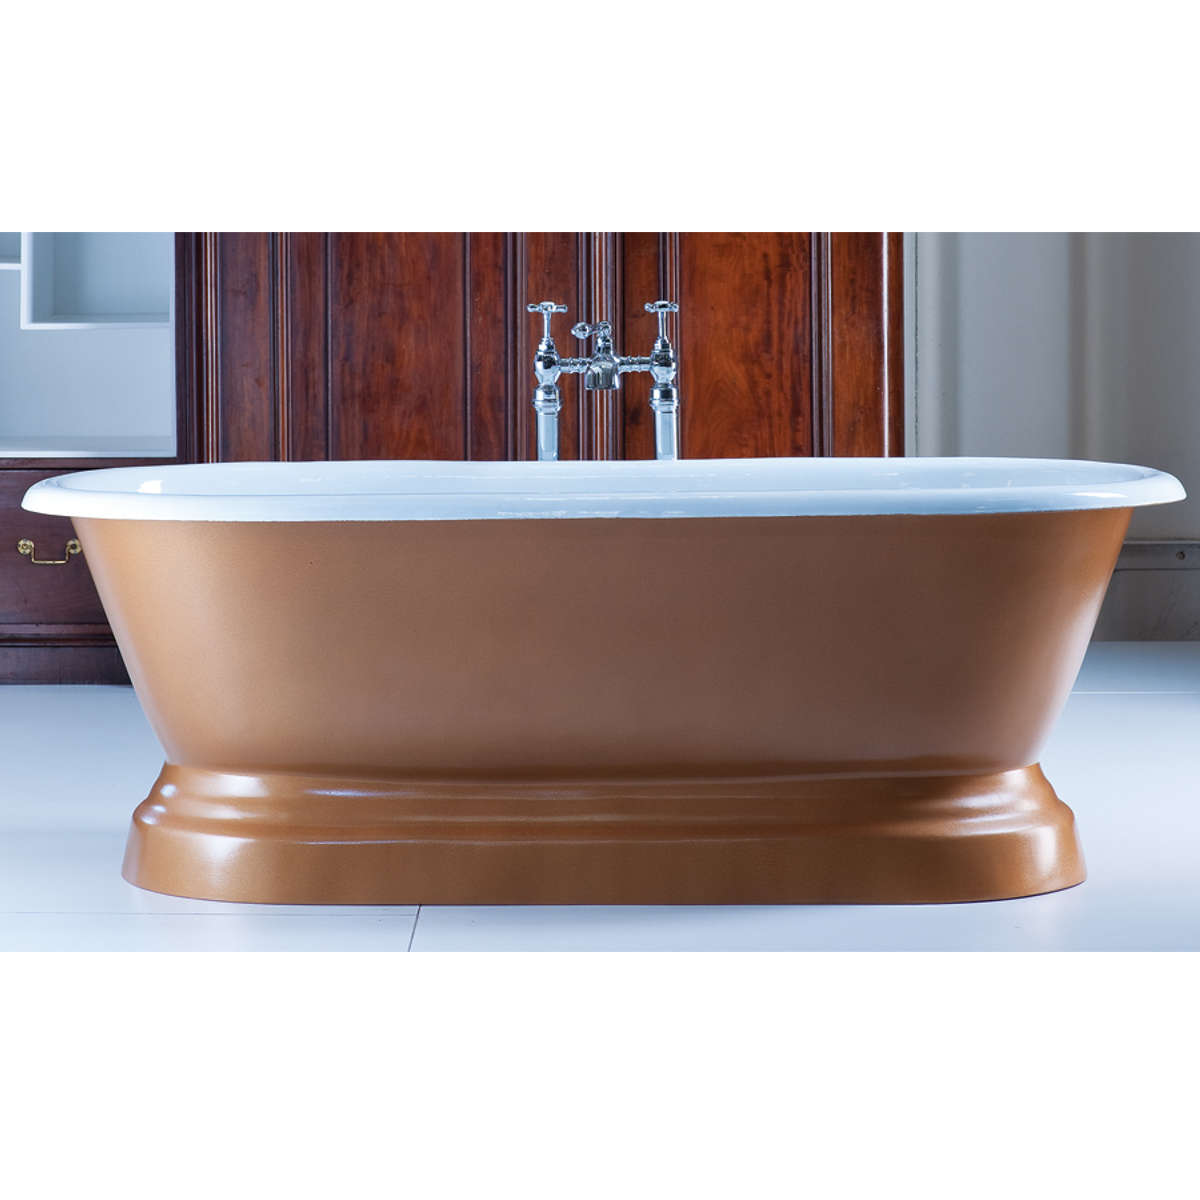 An image of Arroll Baths - The Chaumont Bath - Roll Top Bath - Cream